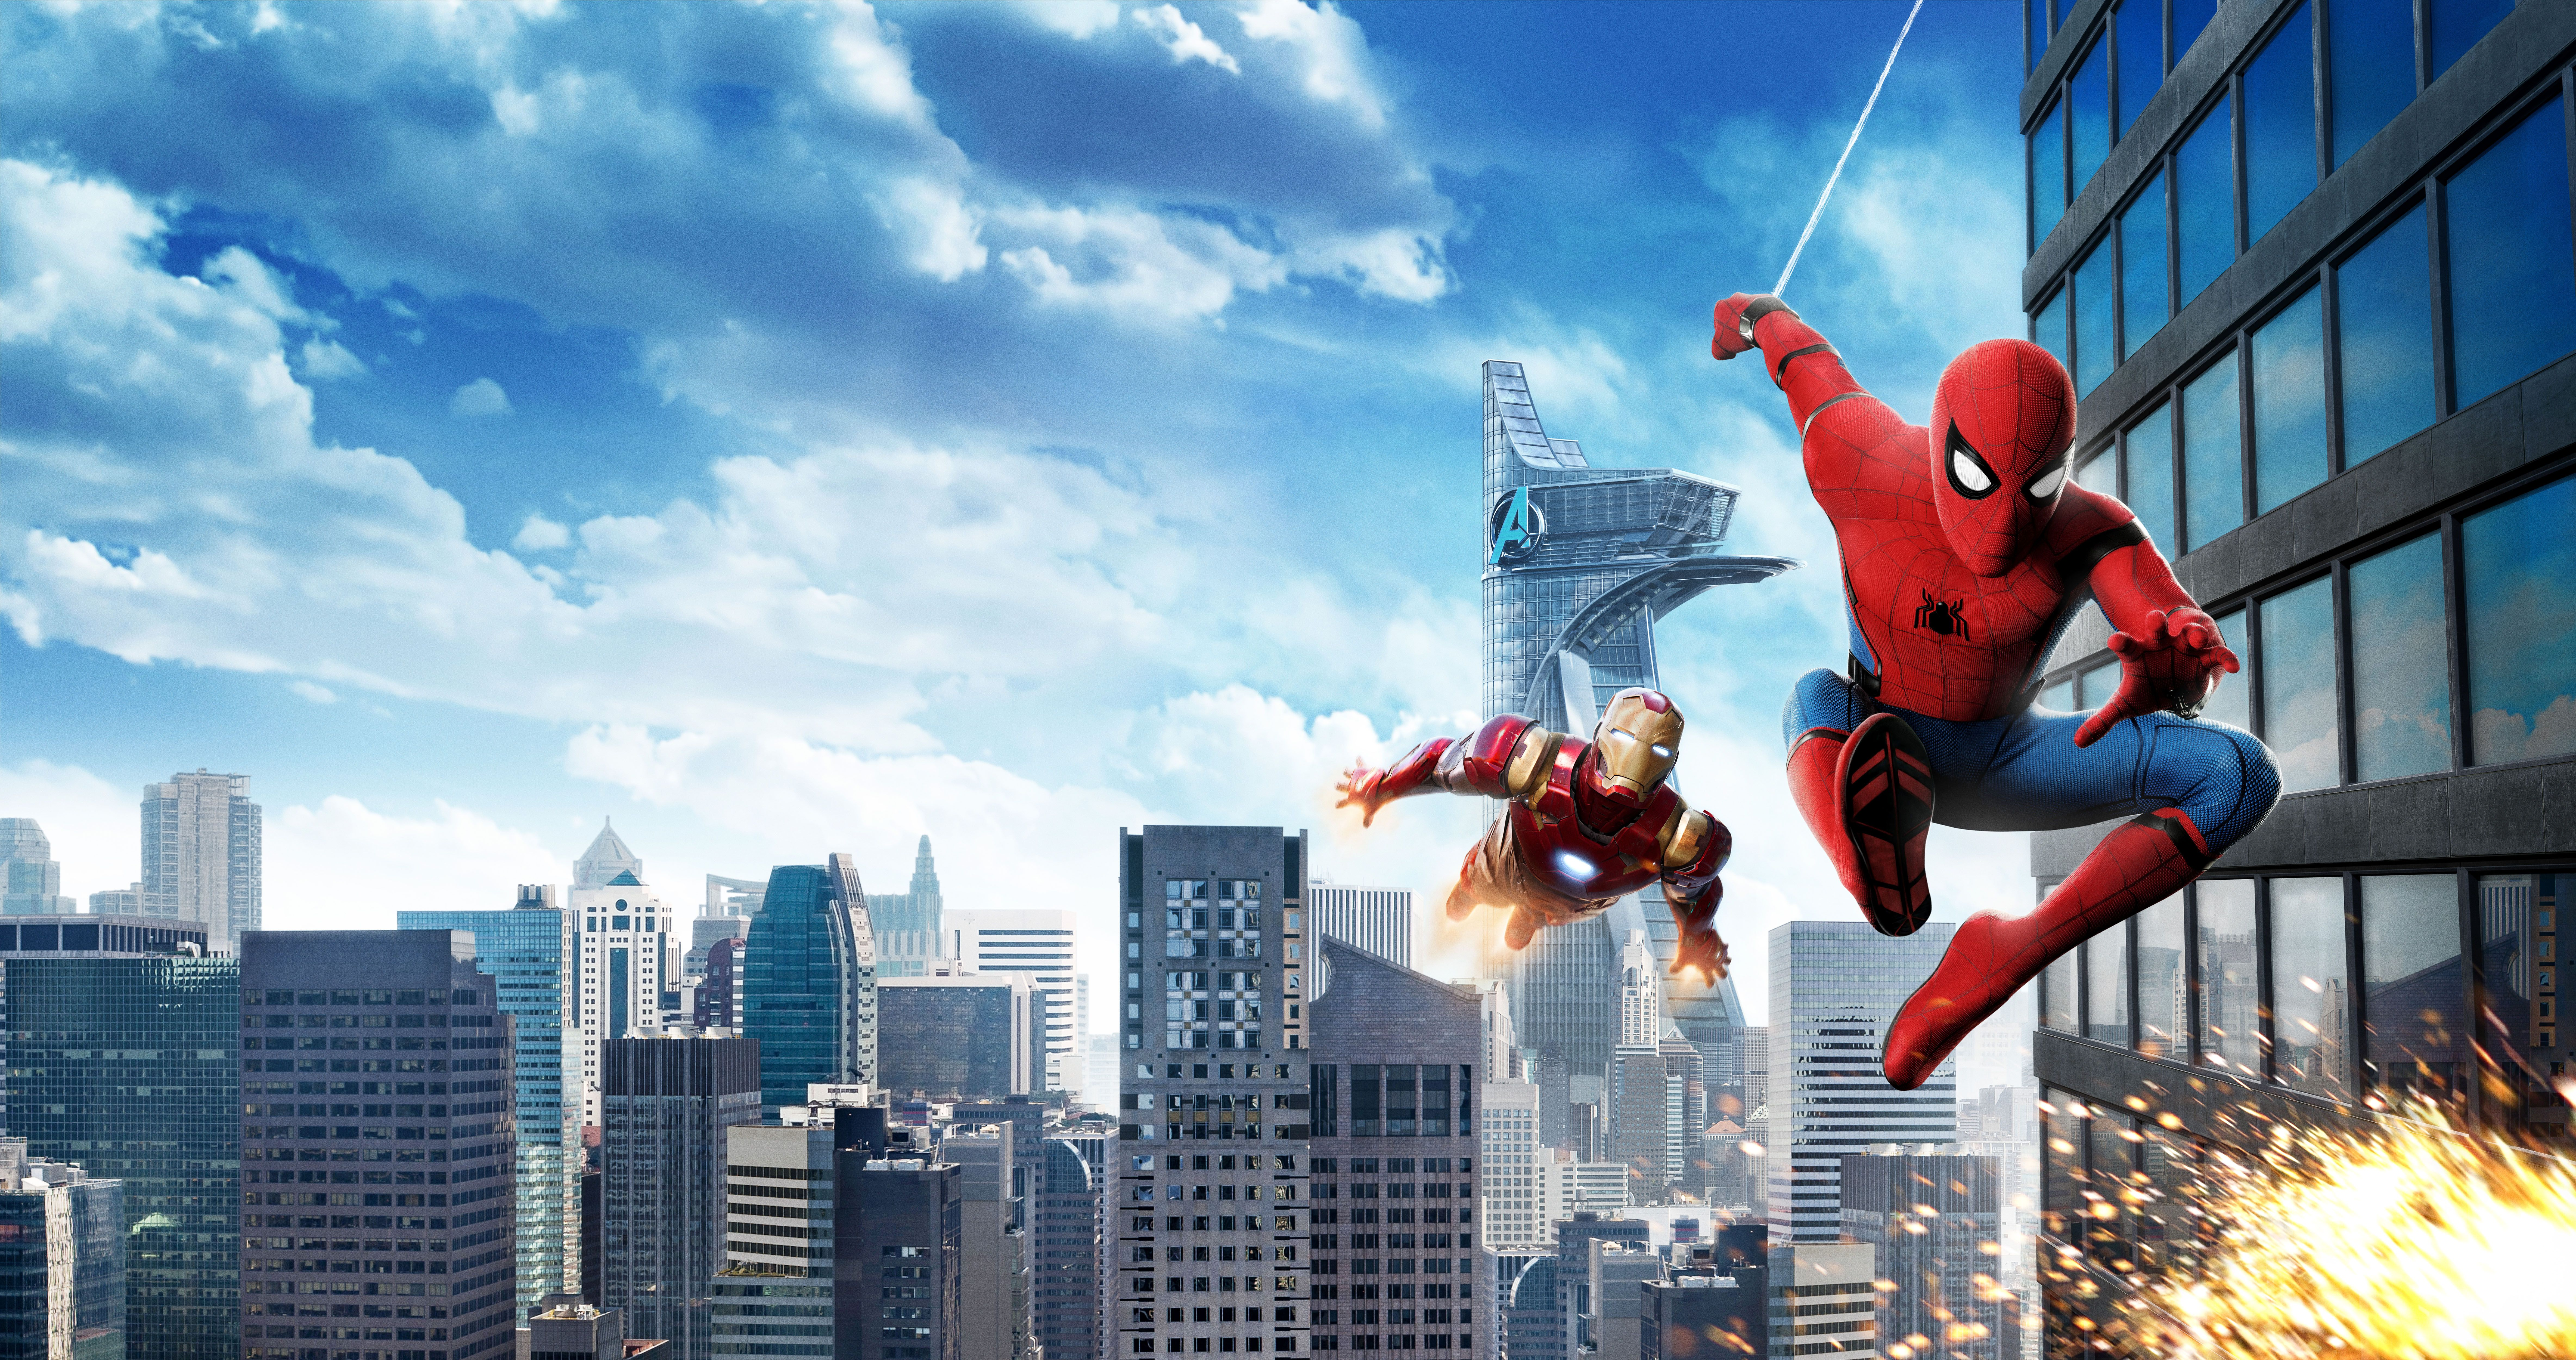 Spider Man Homecoming Wallpaper Picture In 2020 Avengers Wallpaper Marvel Wallpaper Best Pictures Ever